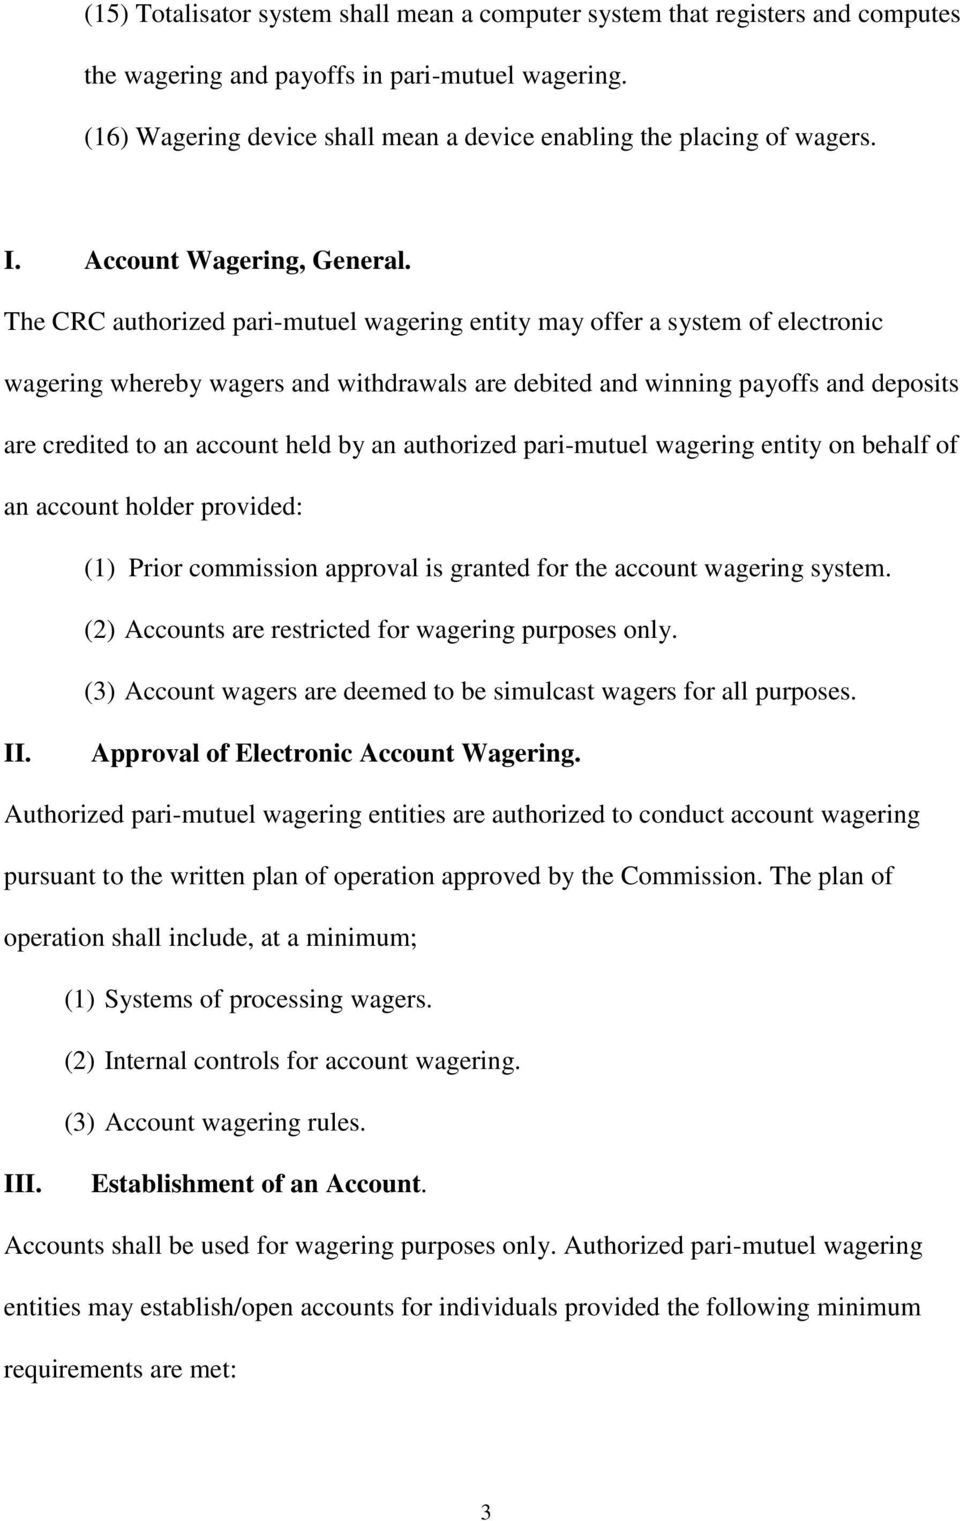 The CRC authorized pari-mutuel wagering entity may offer a system of electronic wagering whereby wagers and withdrawals are debited and winning payoffs and deposits are credited to an account held by